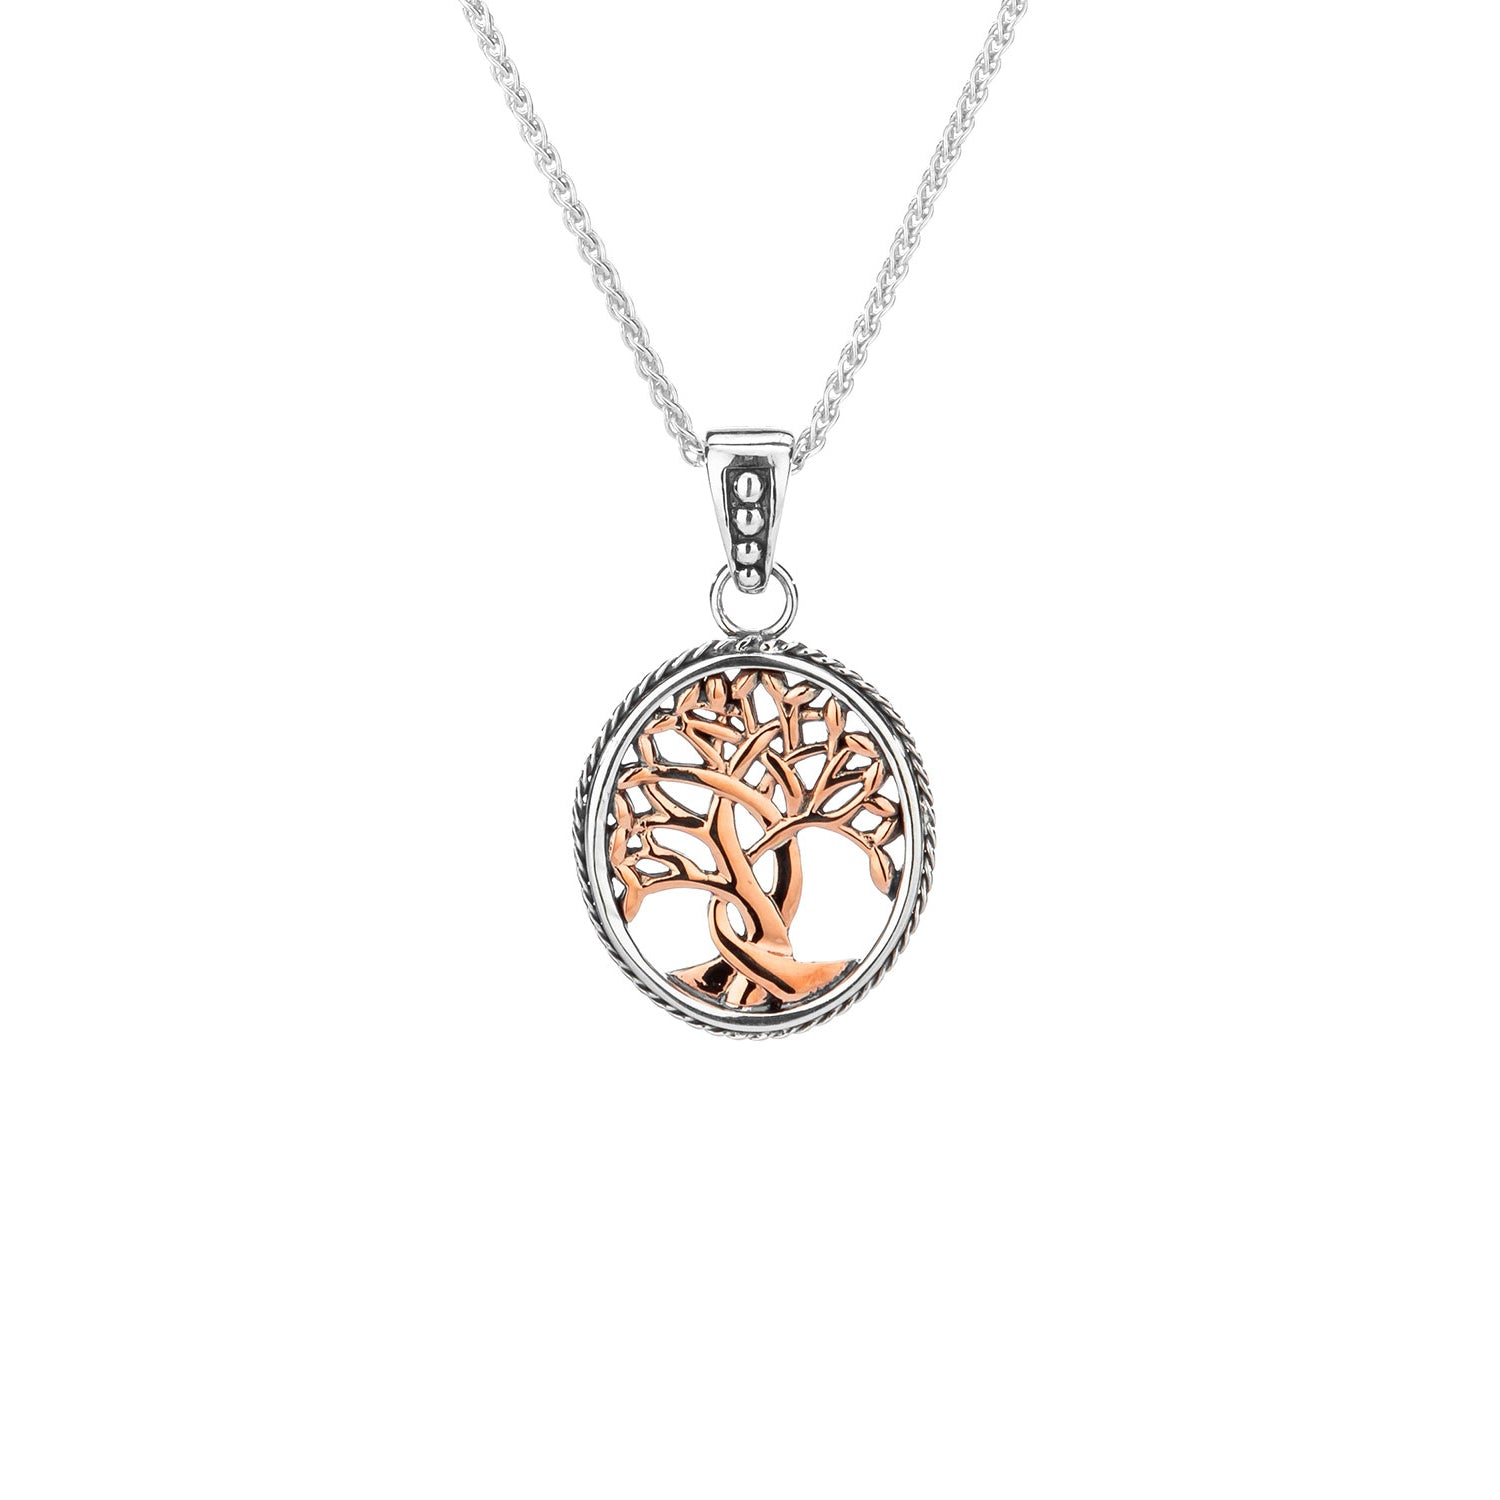 Pendant 10k Rose Tree of Life Pendant Small from welch and company jewelers near syracuse ny